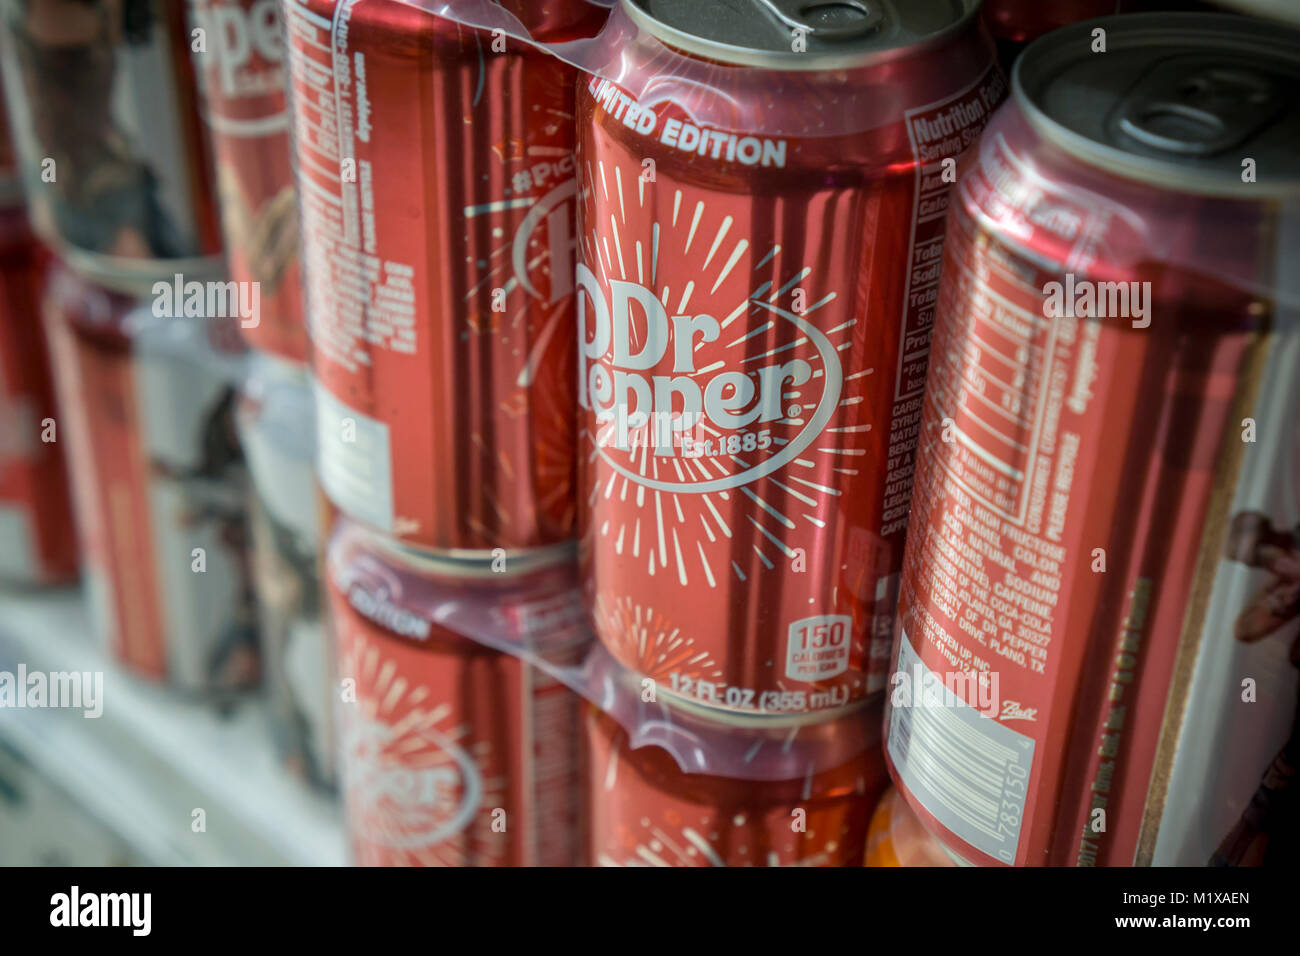 Cans of Dr. Pepper soda on a supermarket shelf in New York on Monday, January 29, 2018. JAB Holding Co.'s Keurig - Stock Image